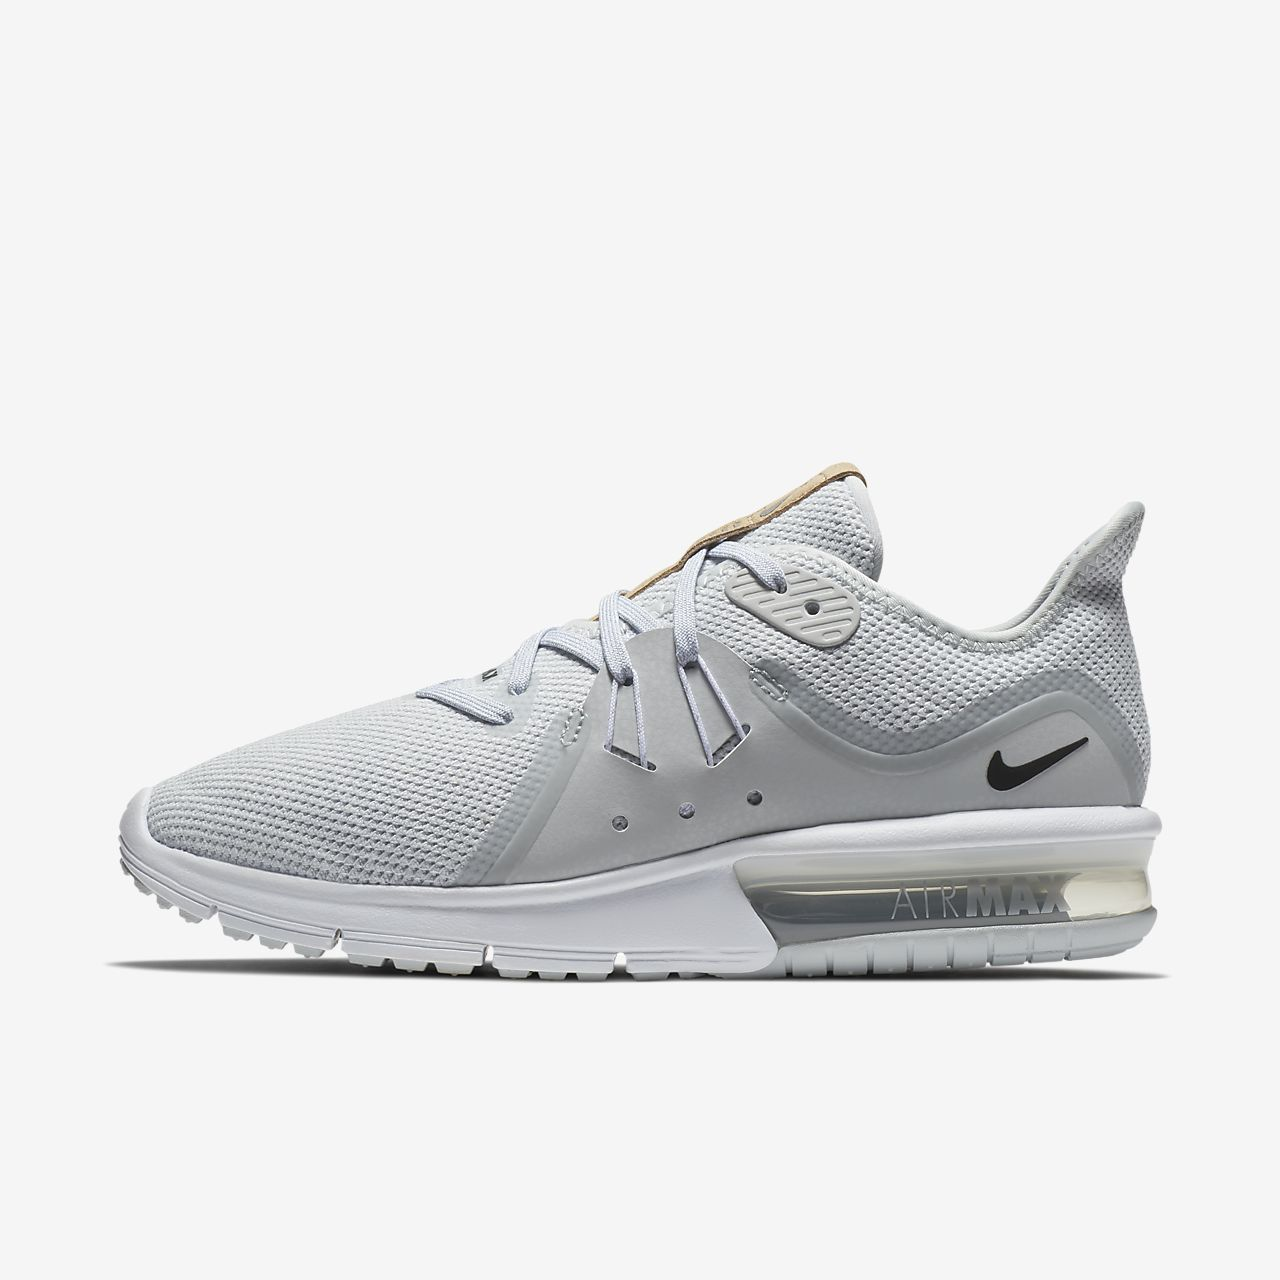 07801933cc1a Nike Air Max Sequent 3 Women s Shoe. Nike.com